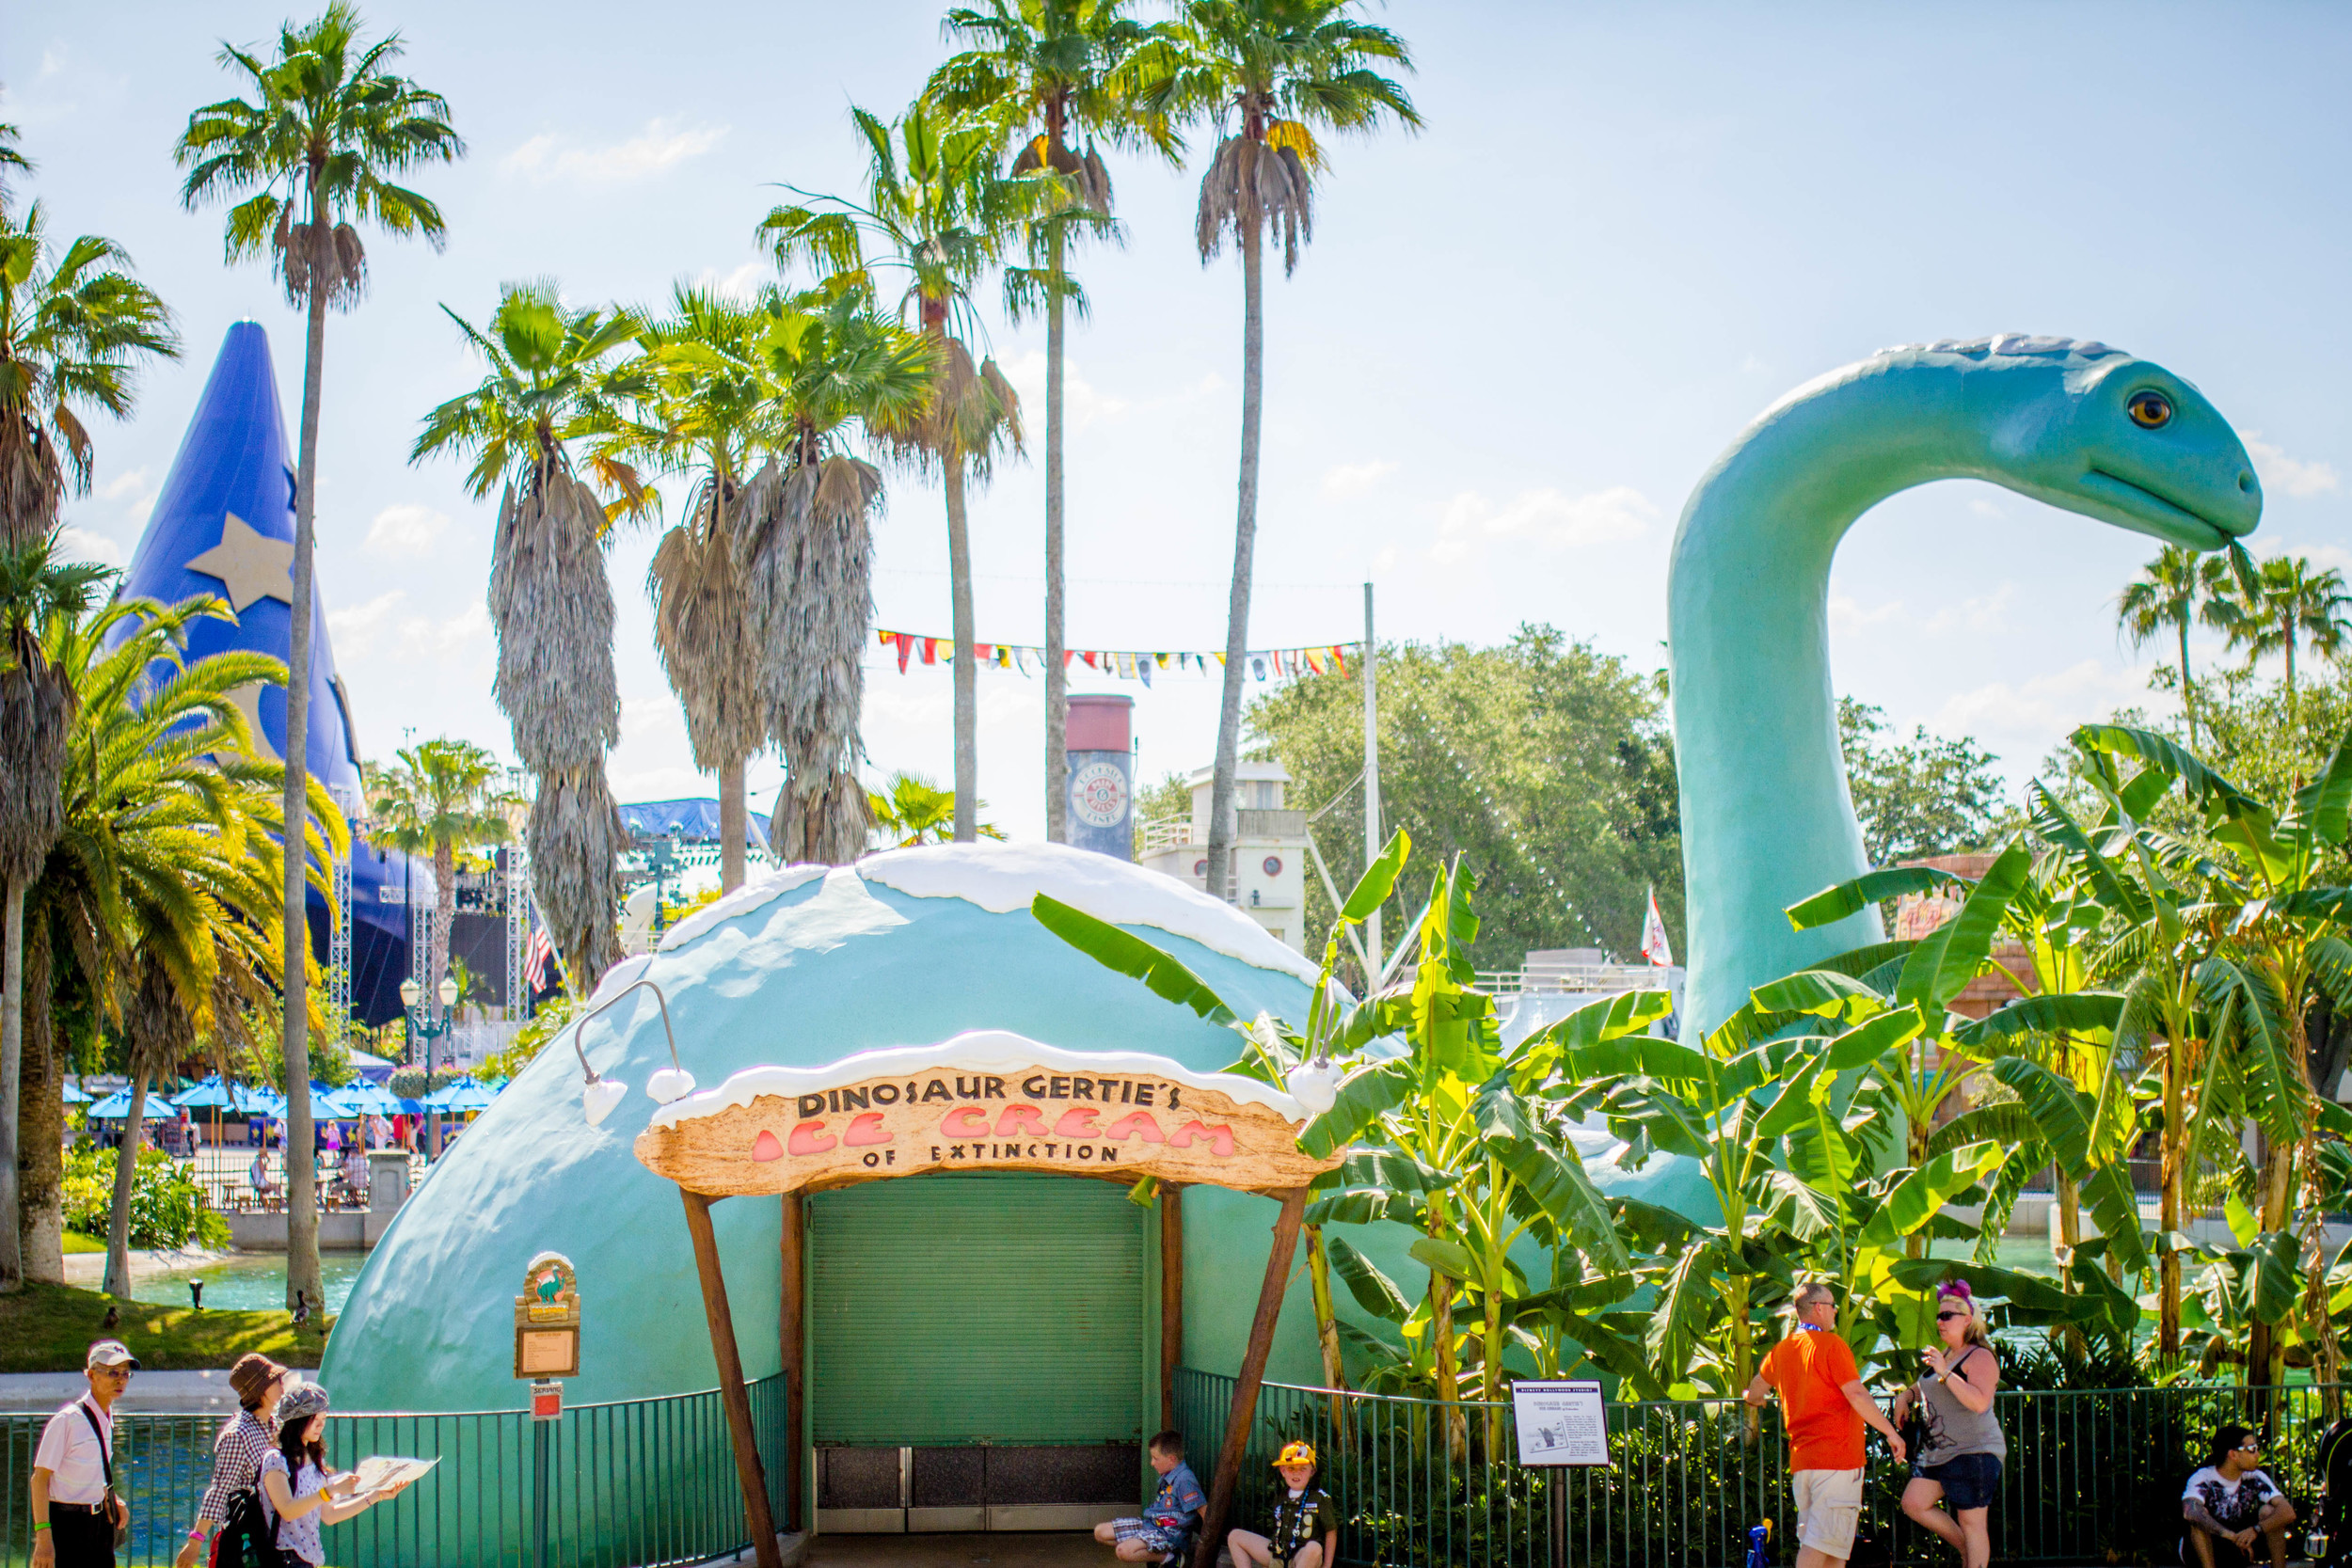 Will Gertie disappear with expected changes coming to Disney's Hollywood Studios?